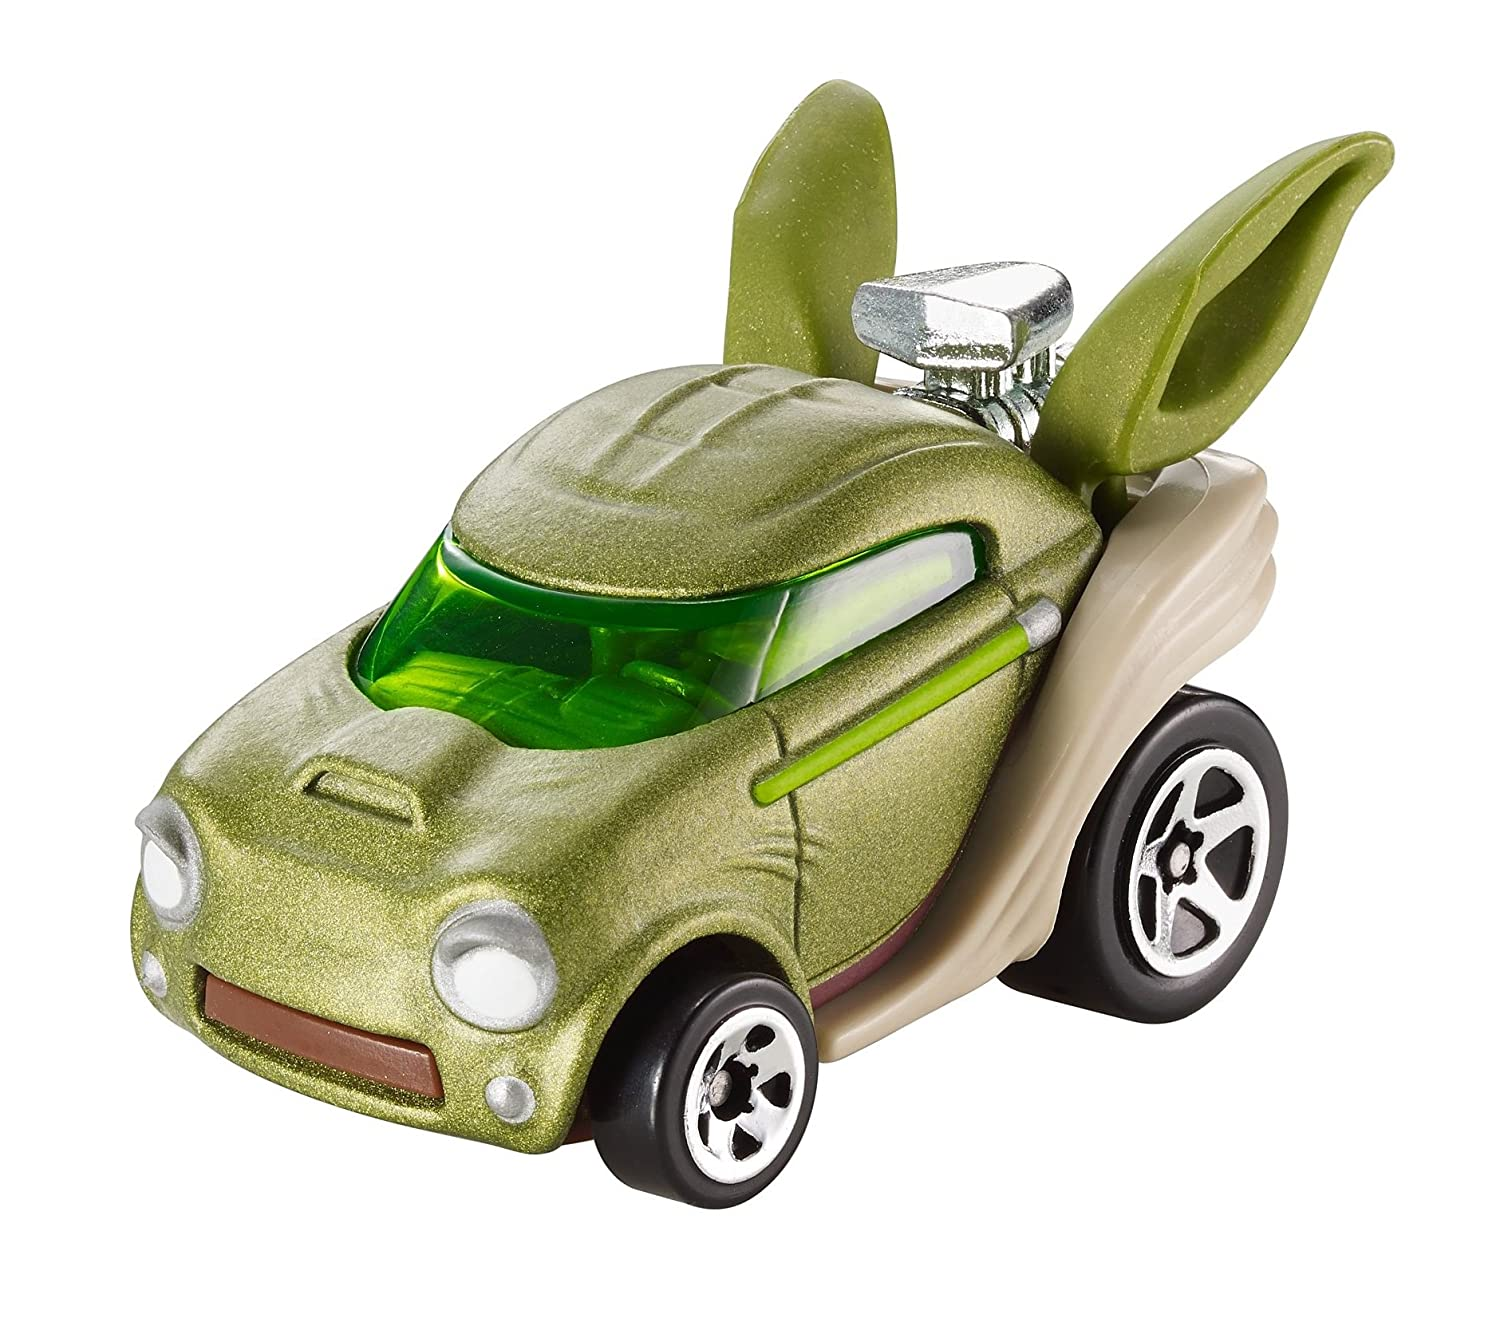 Hot Wheels Star Wars Vehicle Yoda Mattel CGW40